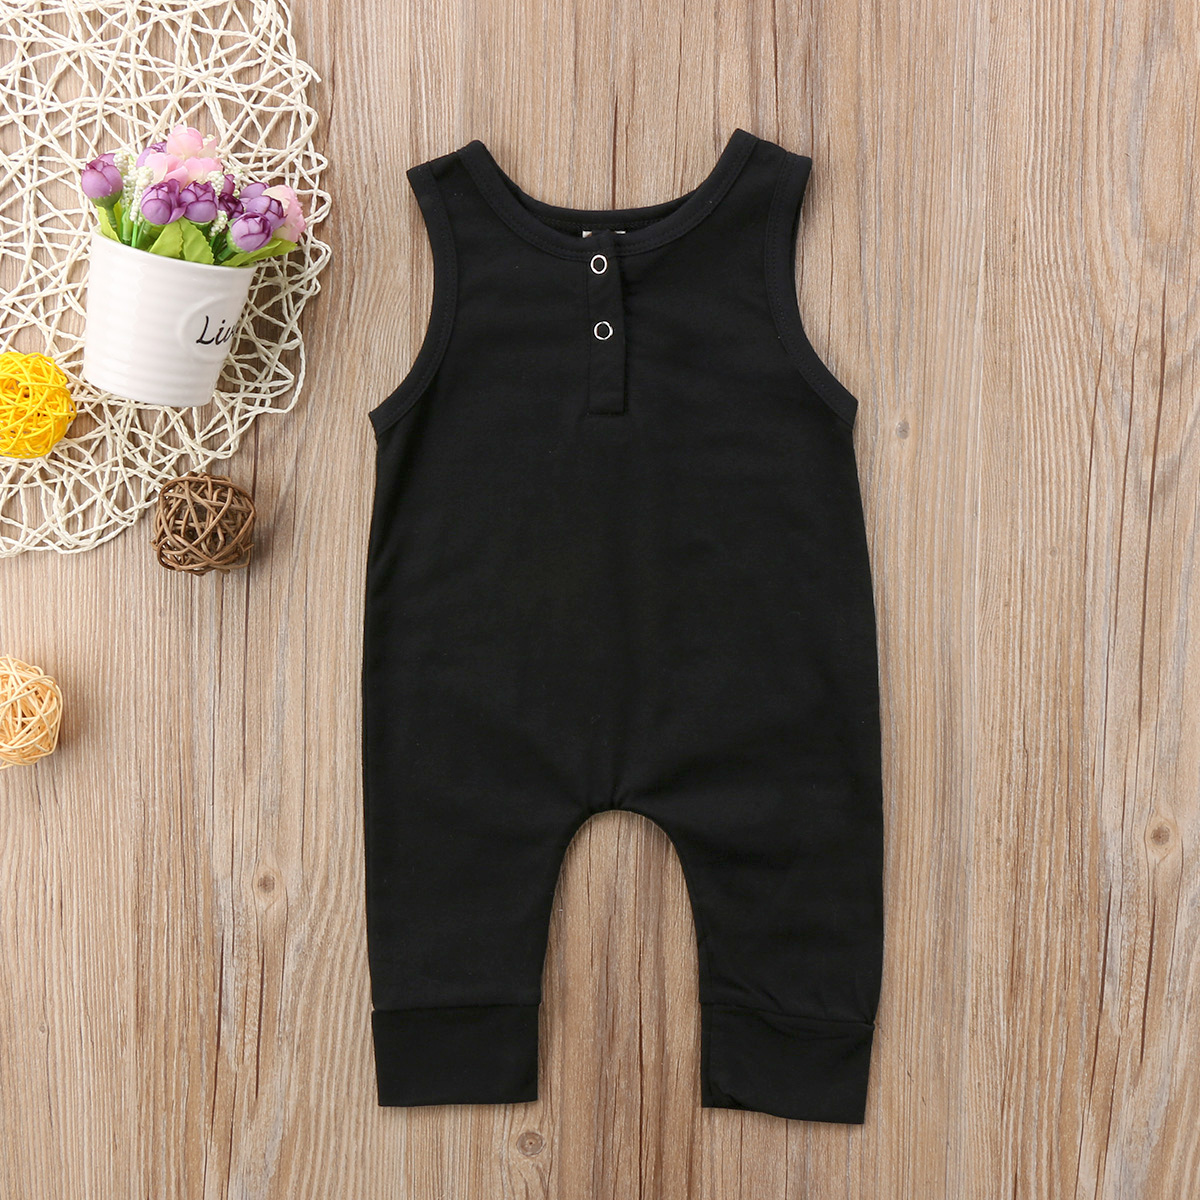 Pudcoco Baby Jumpsuits 0-18M AU Infant Boy Girl Clothes   Romper   Toddler Kid Baby Girls Jumpsuits Pants Clothes